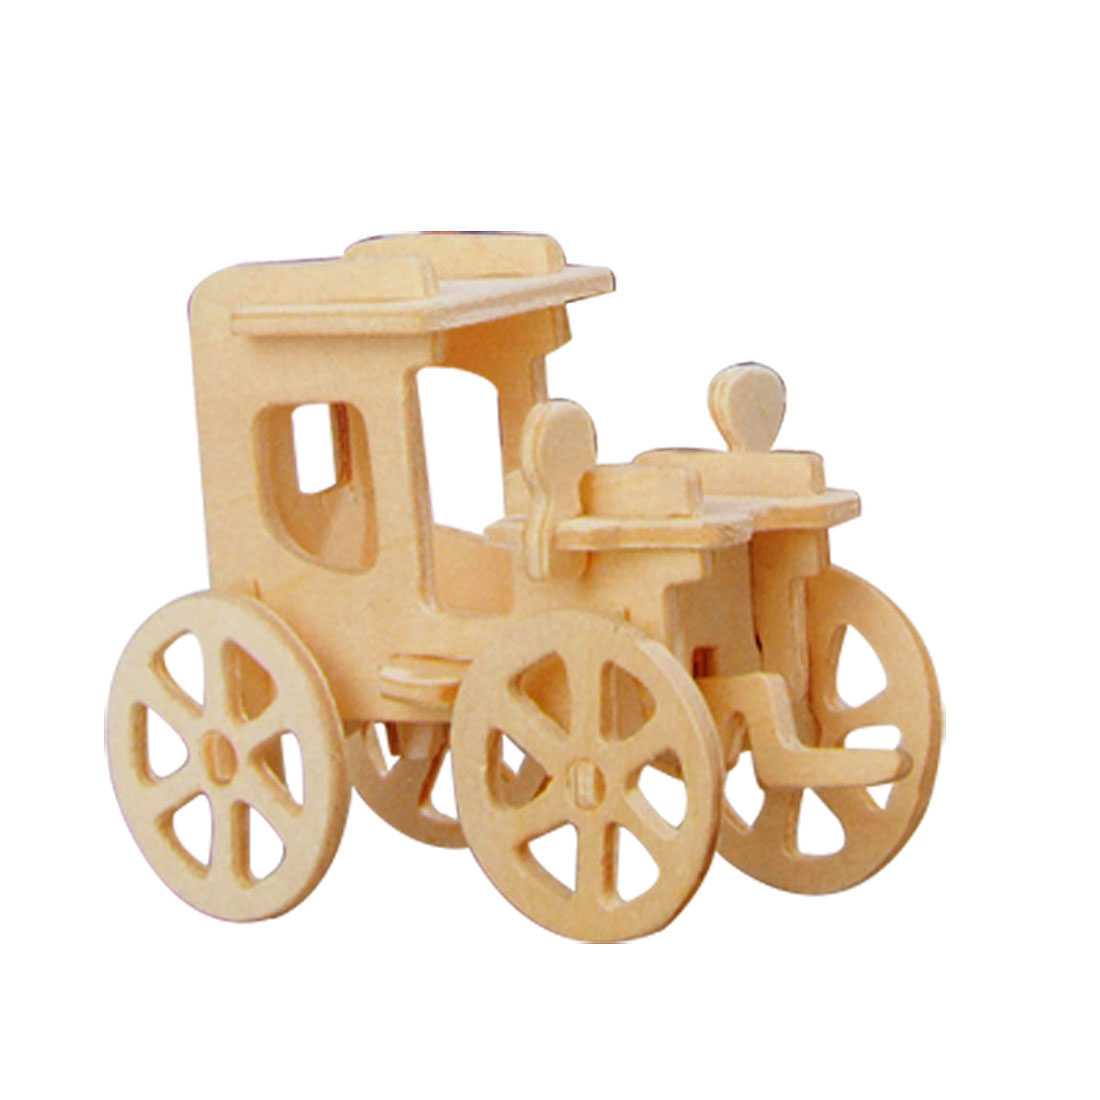 Carriage Model DIY Wooden Construction Kit Toy for Children